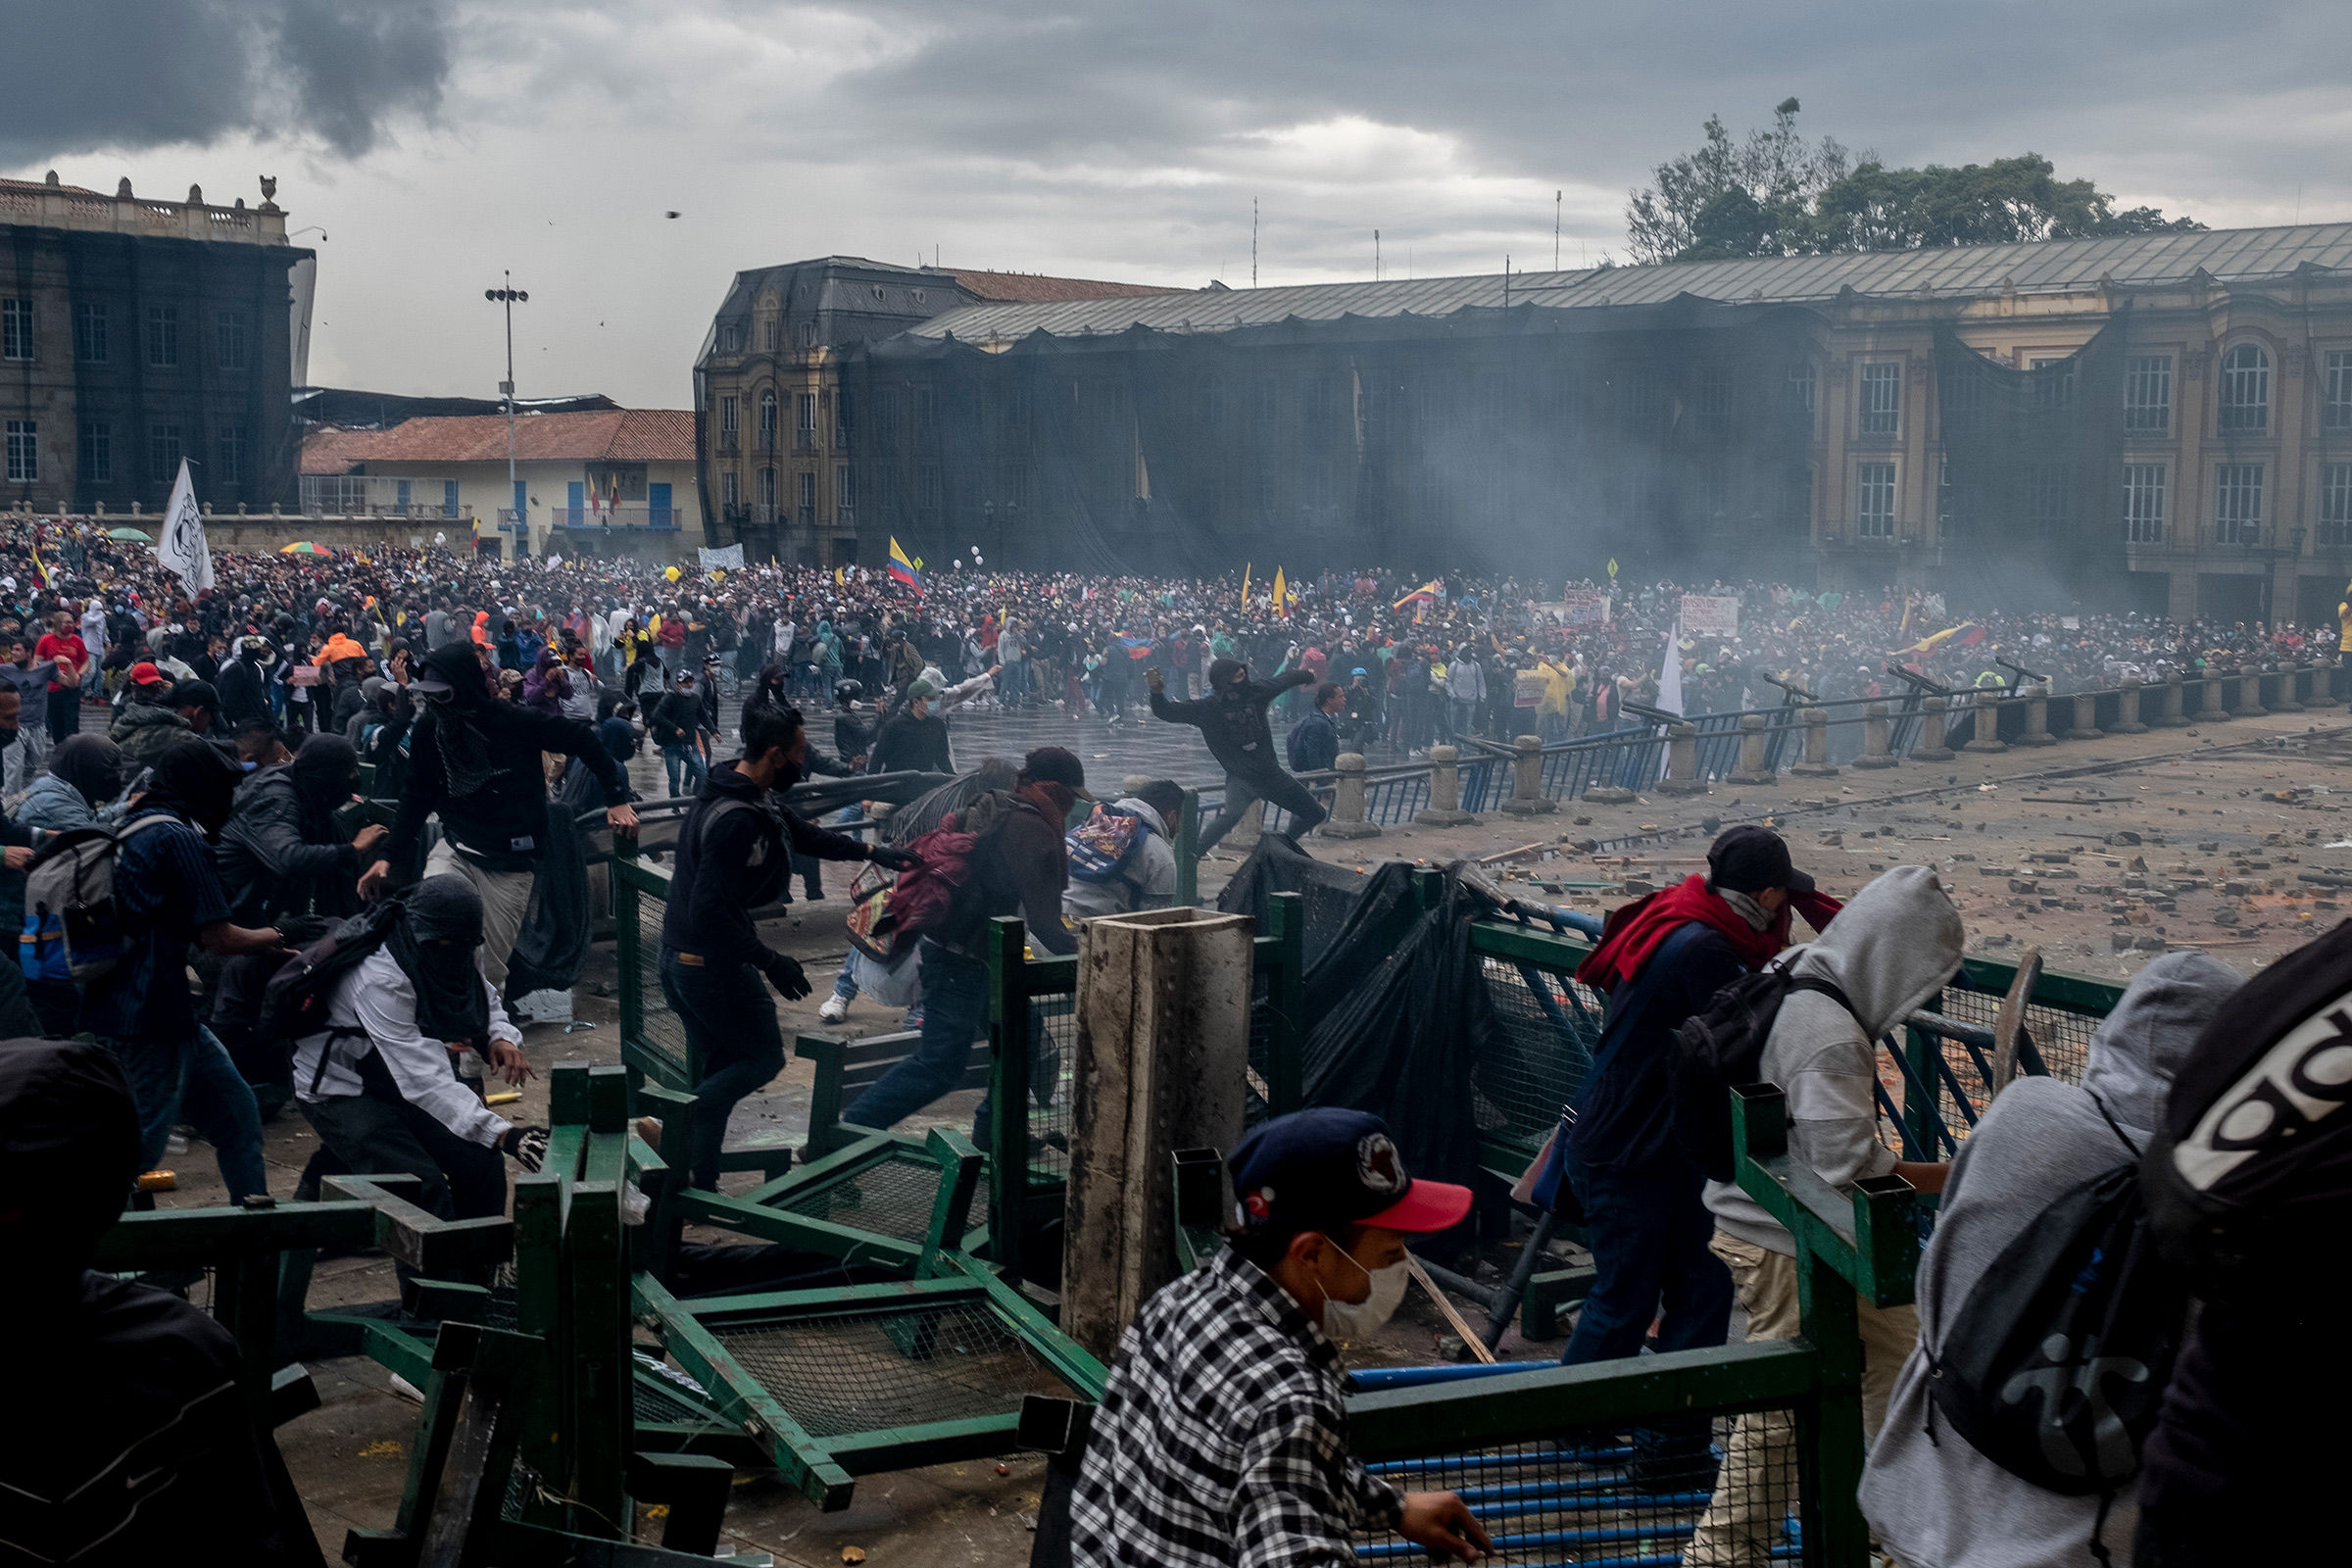 Protesters run up against barricades in Bogotá on April 28.